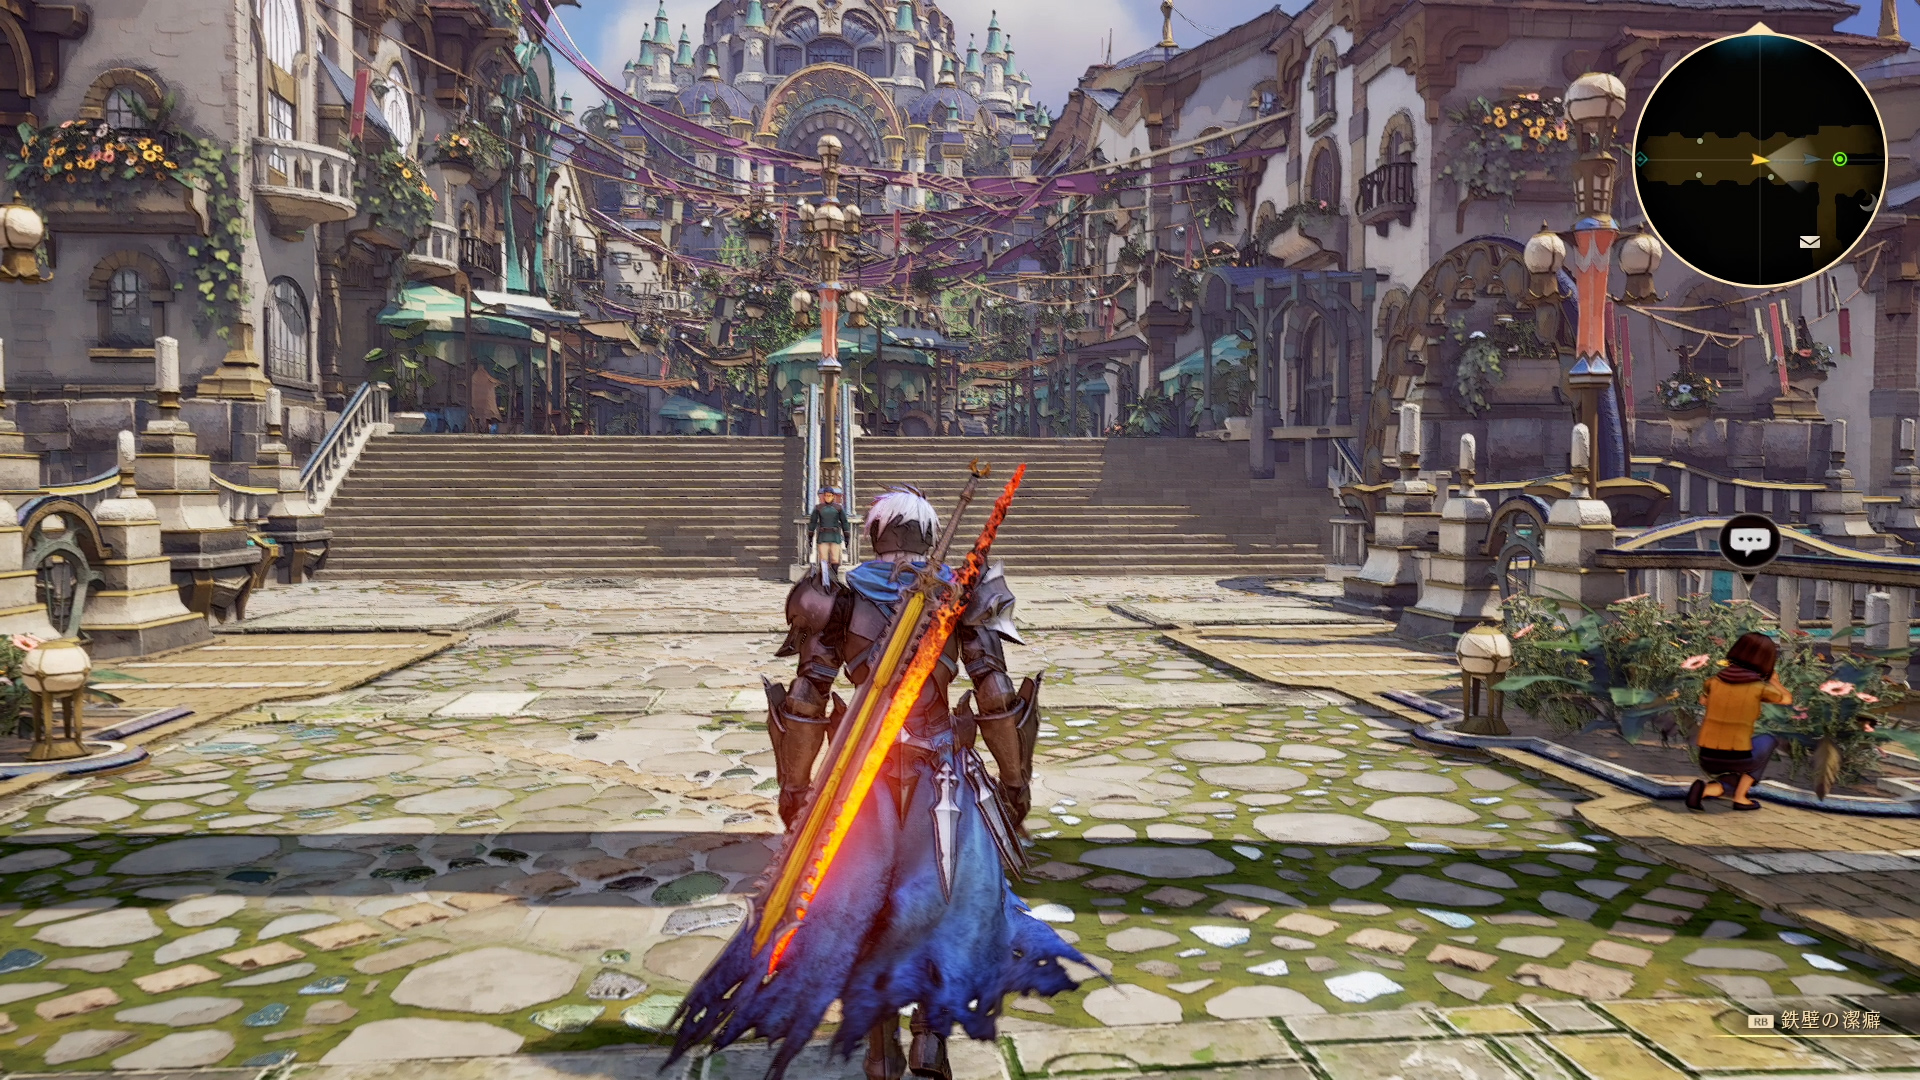 Tales of Arise Gets Tons of Screenshots & New Details About Skits, Camping,  Cooking Farming, & More